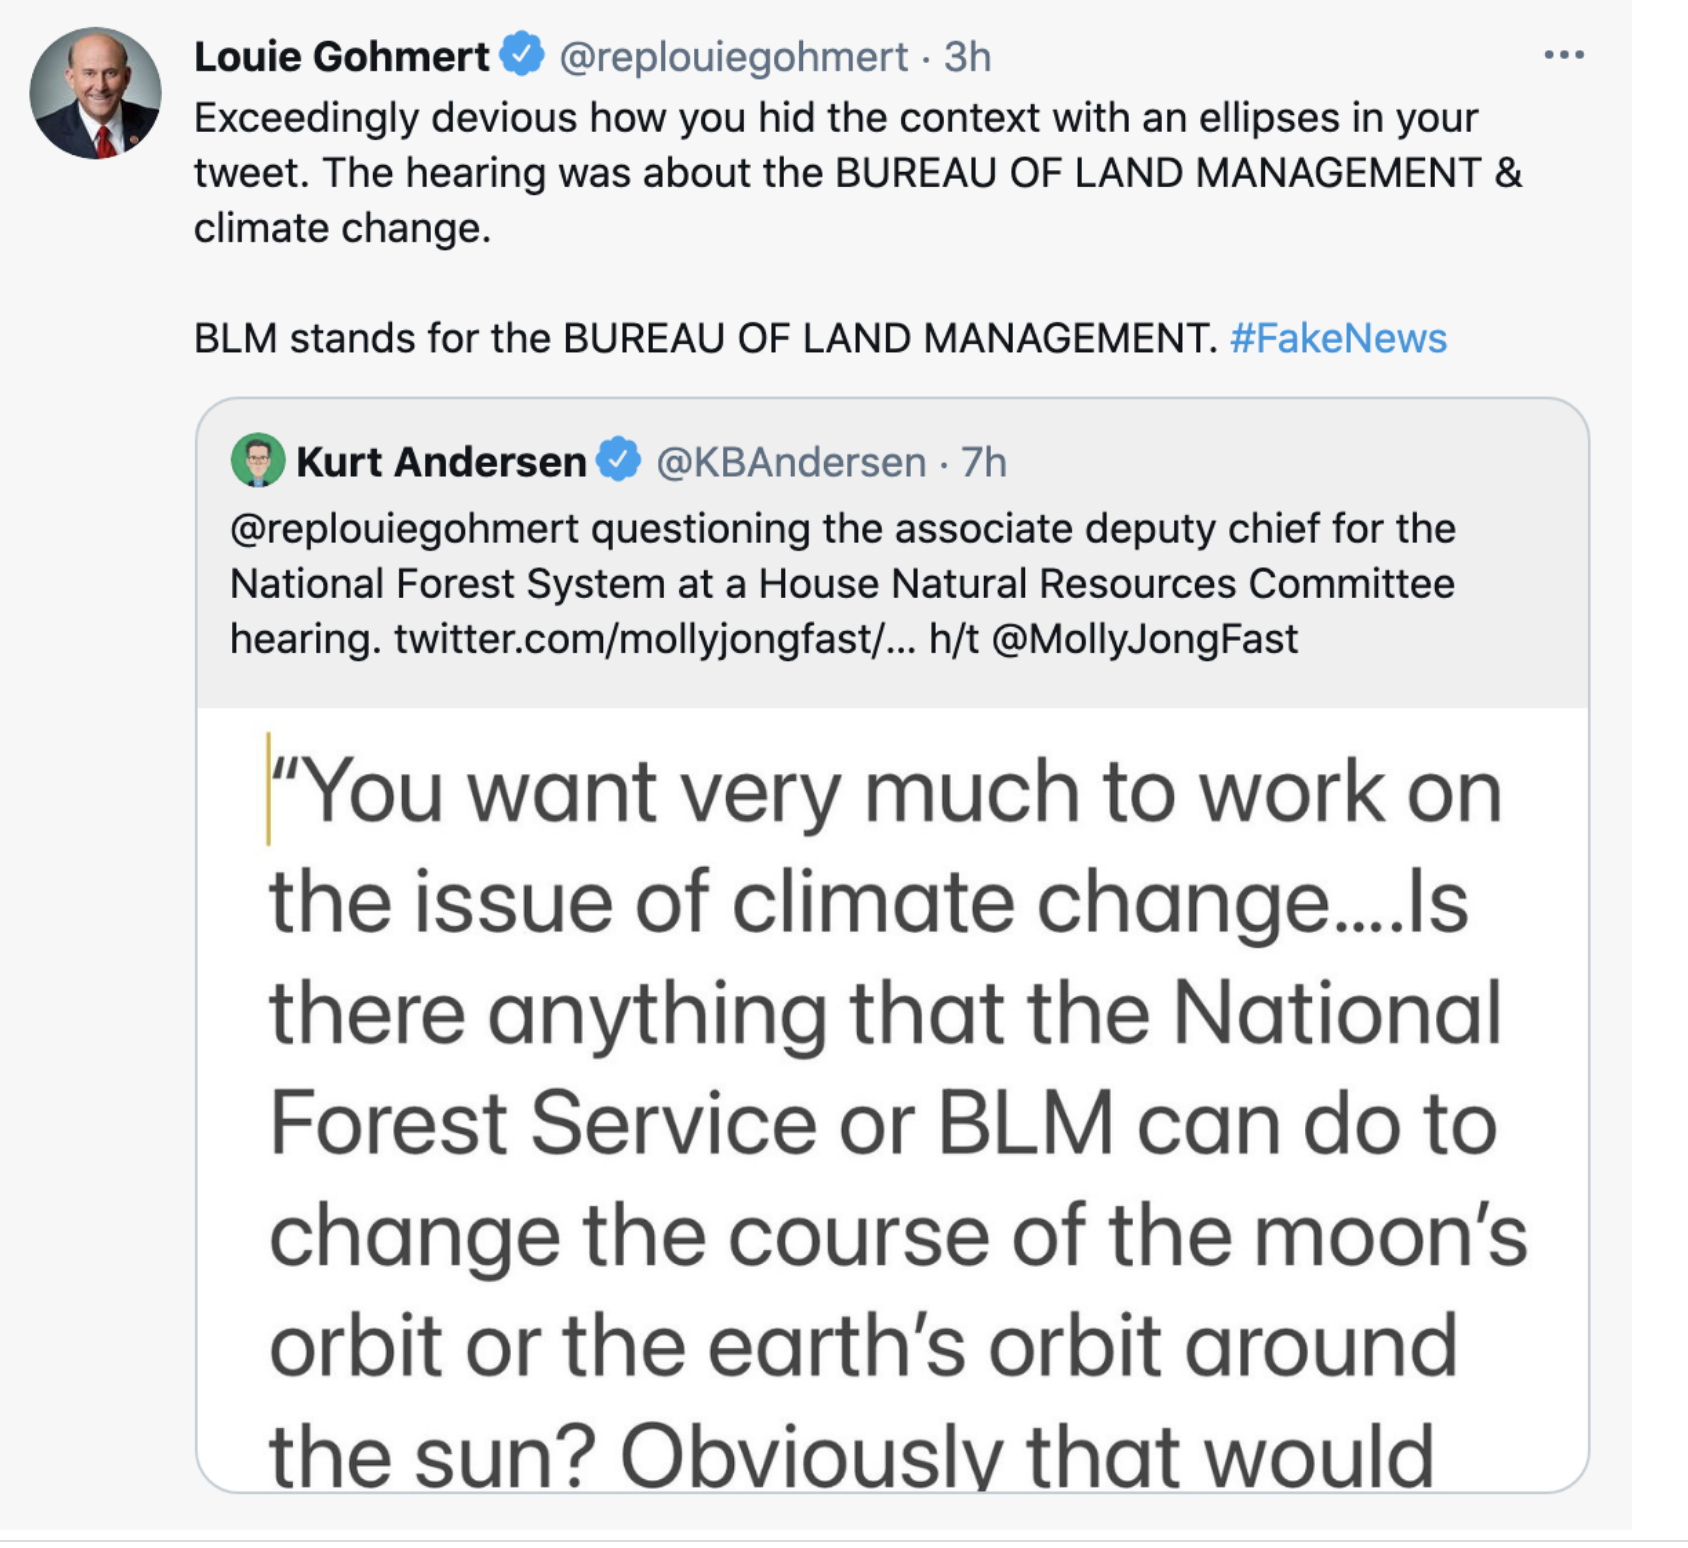 Screen-Shot-2021-06-09-at-2.30.19-PM Gohmert Wants Scientists To Alter Earth's Orbit To Fight Fires Conspiracy Theory Environment Featured Politics Top Stories